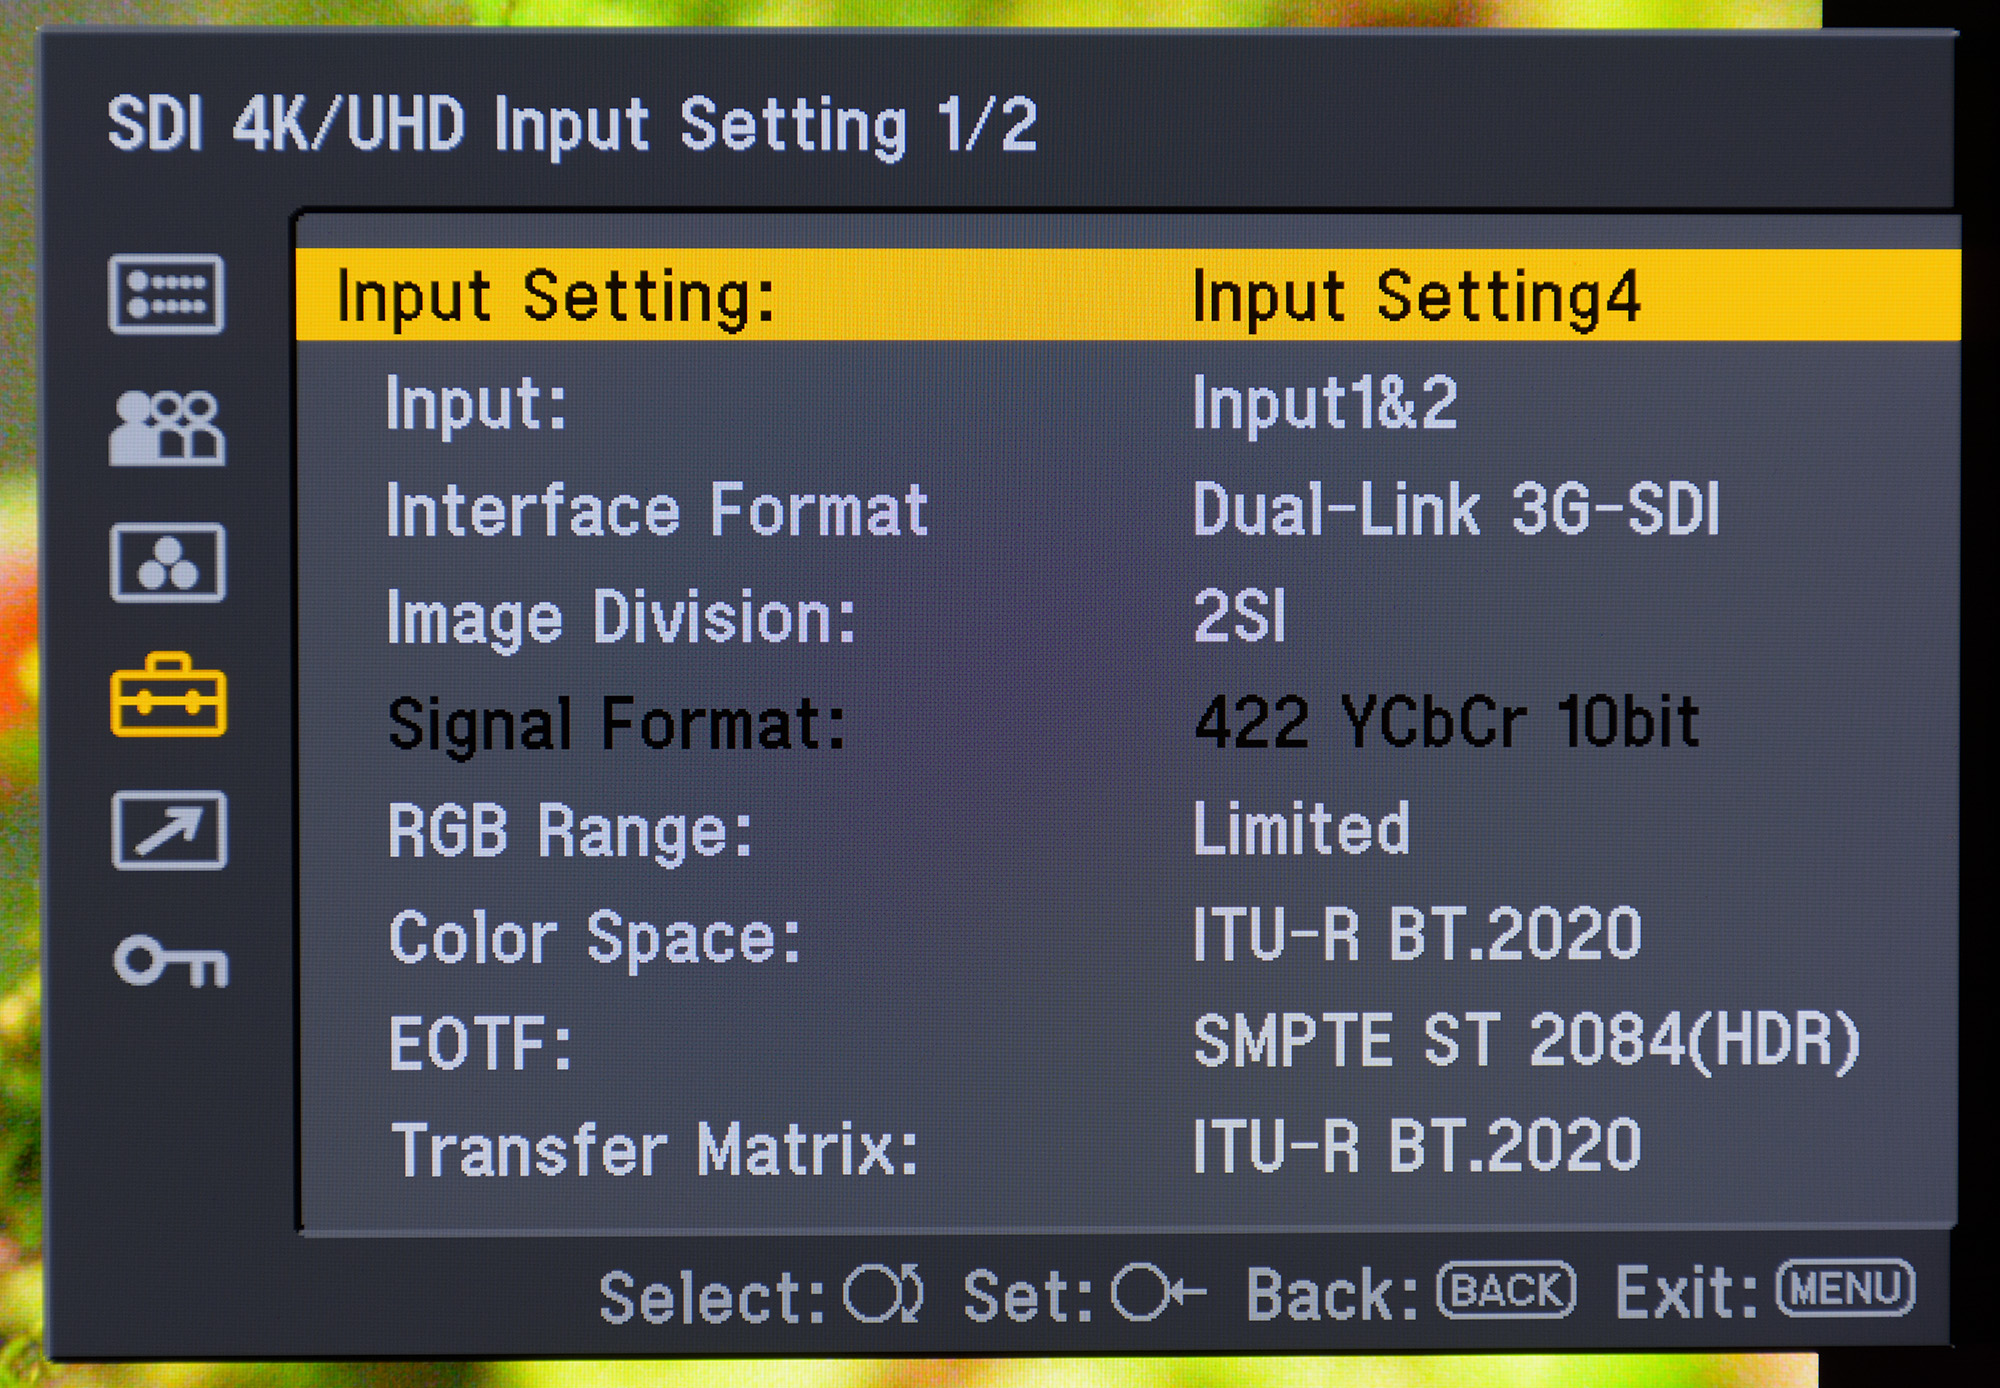 Settings for enabling SMPTE ST.2084 HDR on the Sony BVM-X300